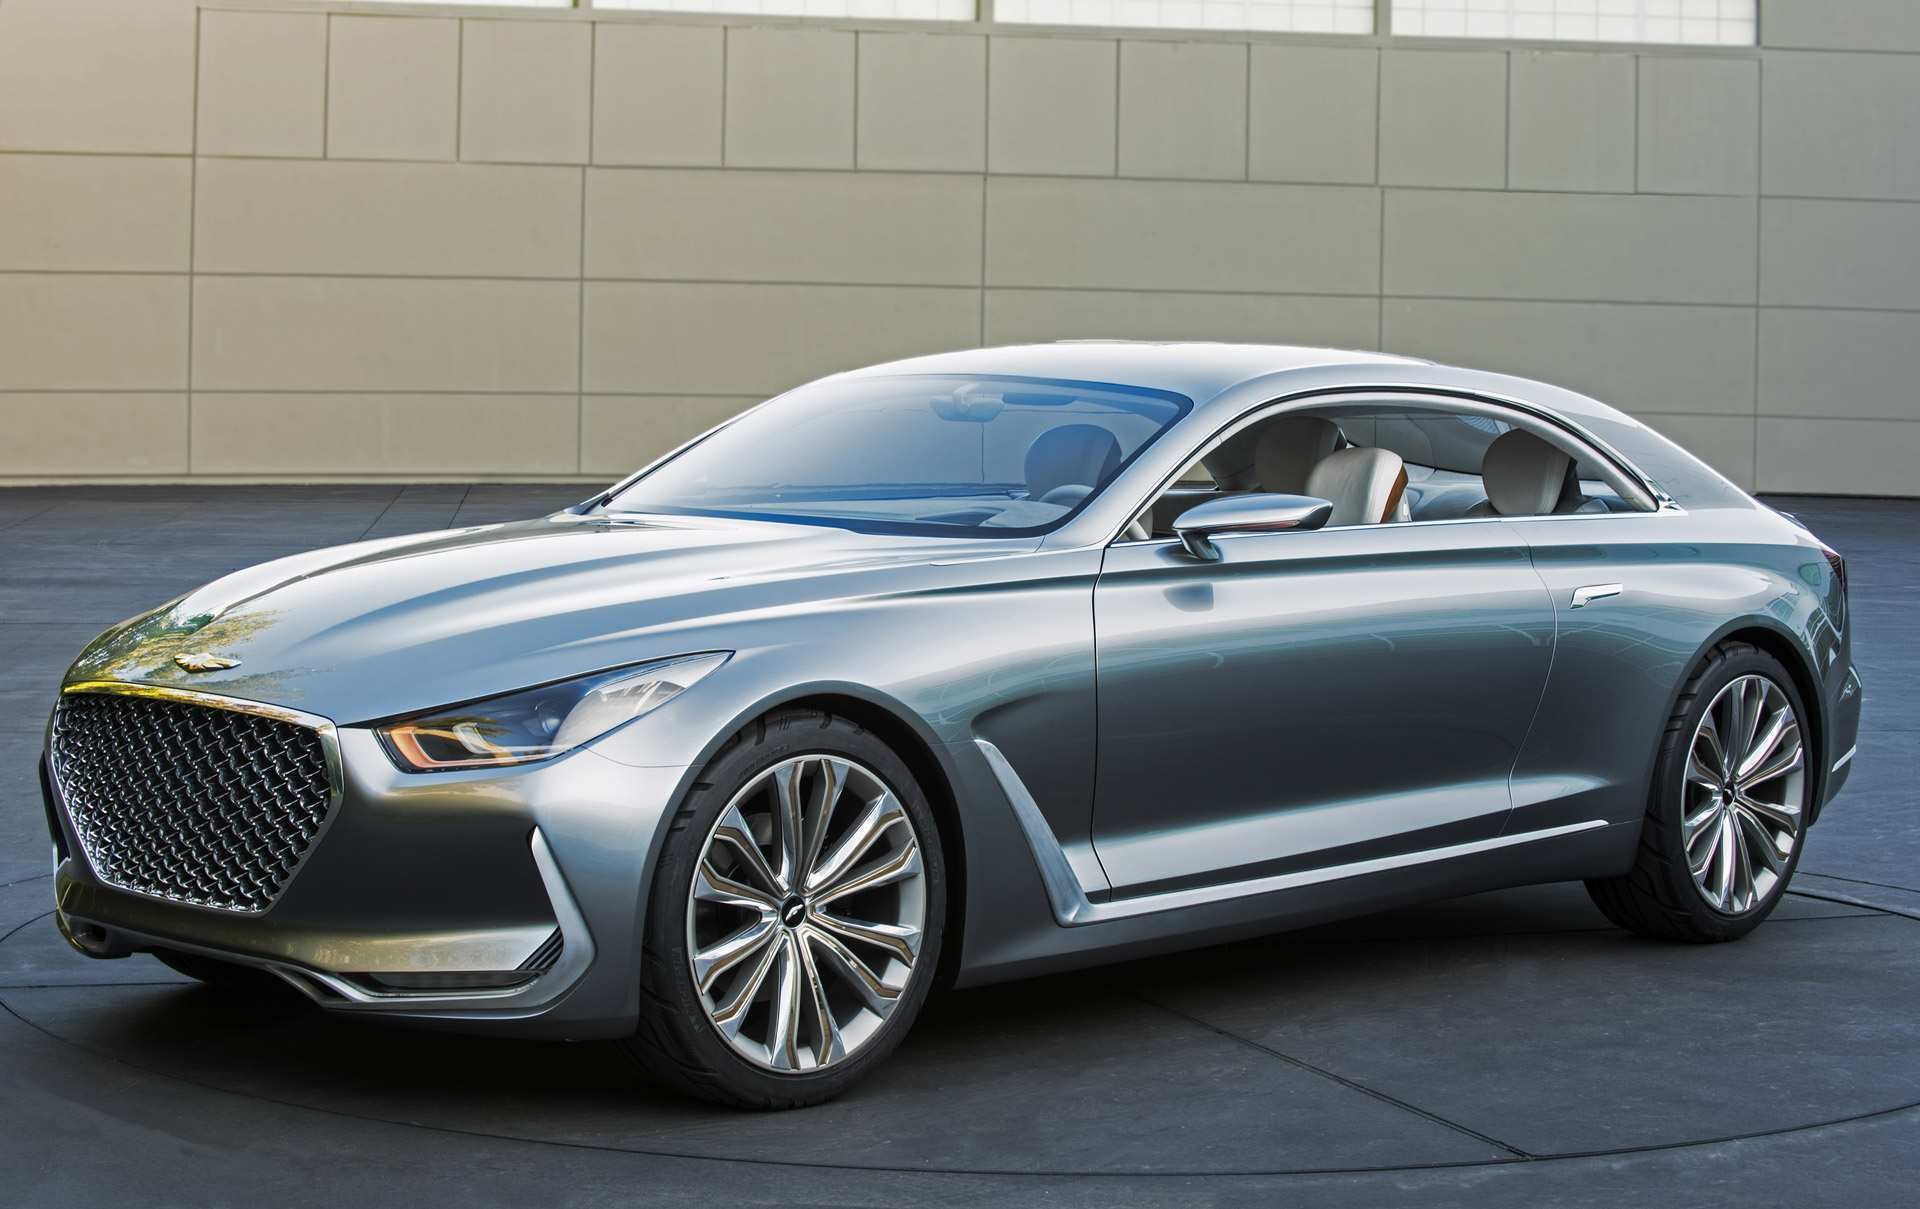 64 The Best 2020 Hyundai Coupe Configurations